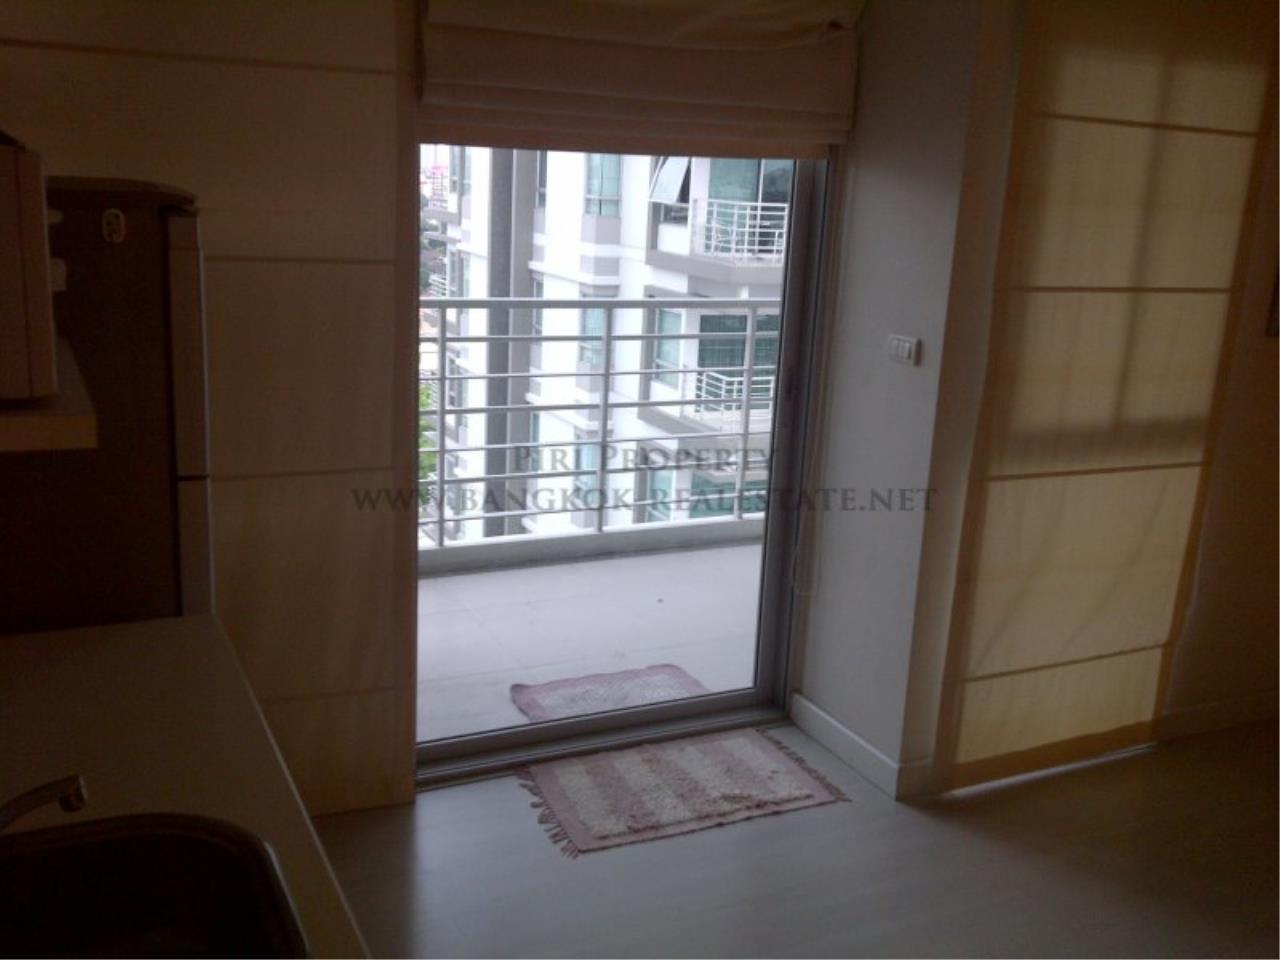 Piri Property Agency's The Room Lad Prao - 2 Bedroom on High Floor - 61SQM - 25K 9